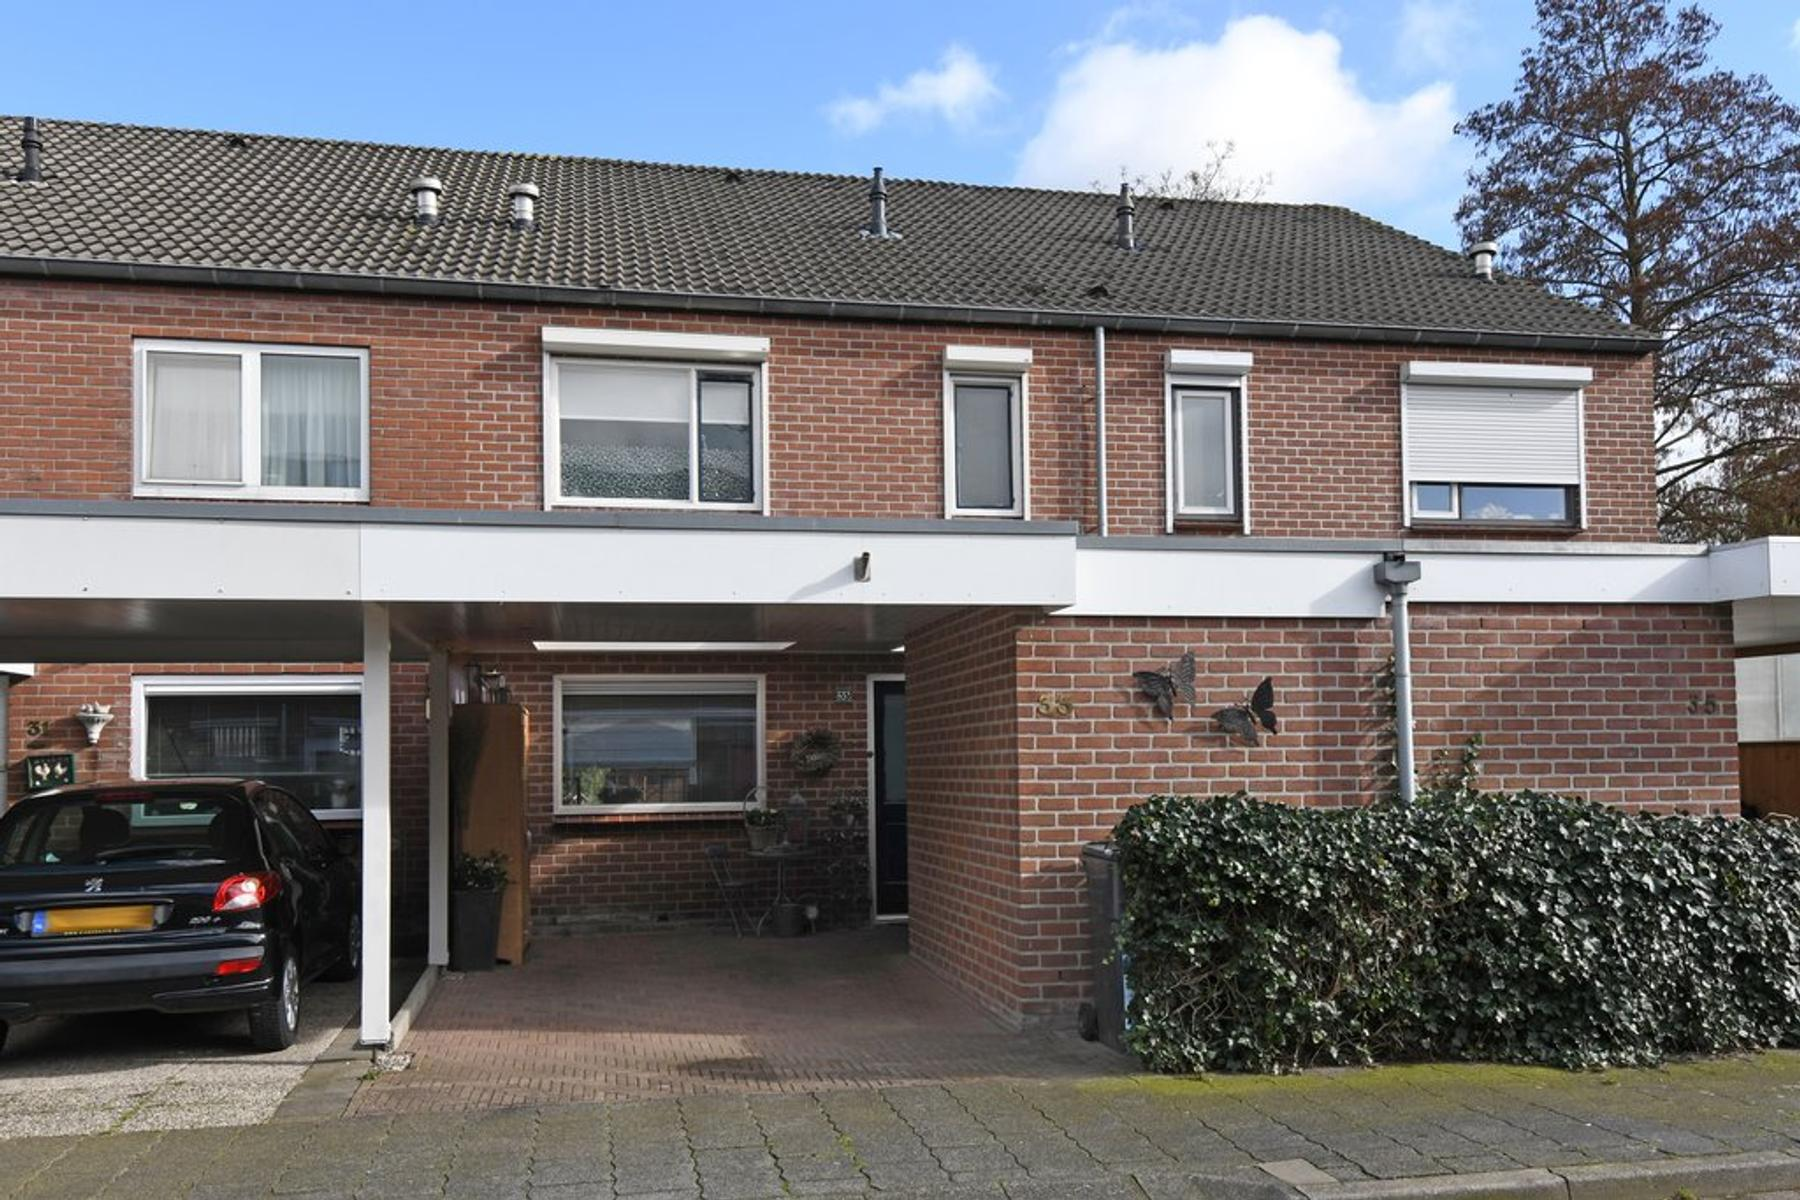 Botterstraat 33 in Elburg 8081 JT